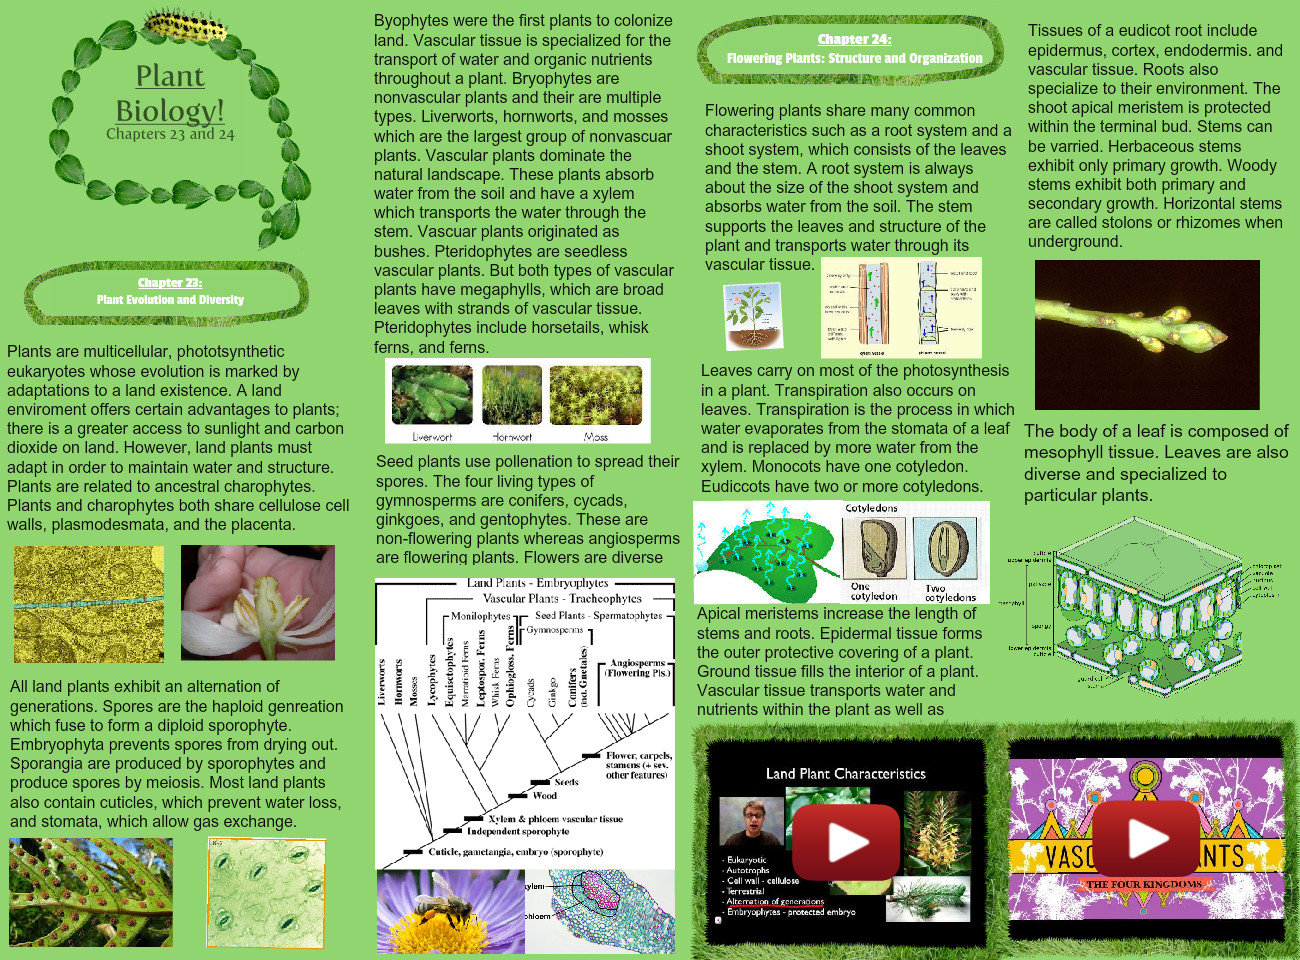 Plant Biology Chapters 23 and 24